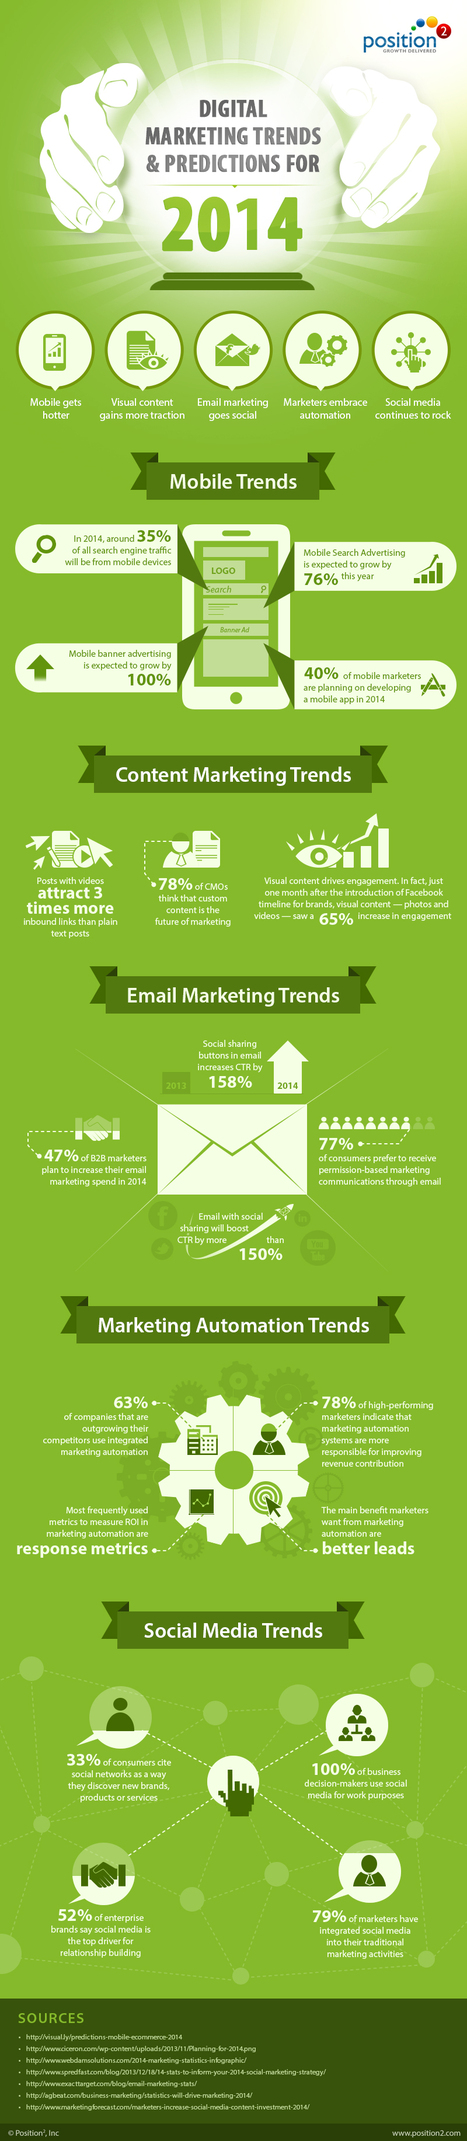 [Infographic] Digital Marketing Trends & Predictions for 2014 | Position² | #TheMarketingAutomationAlert | Digital advertising | Scoop.it